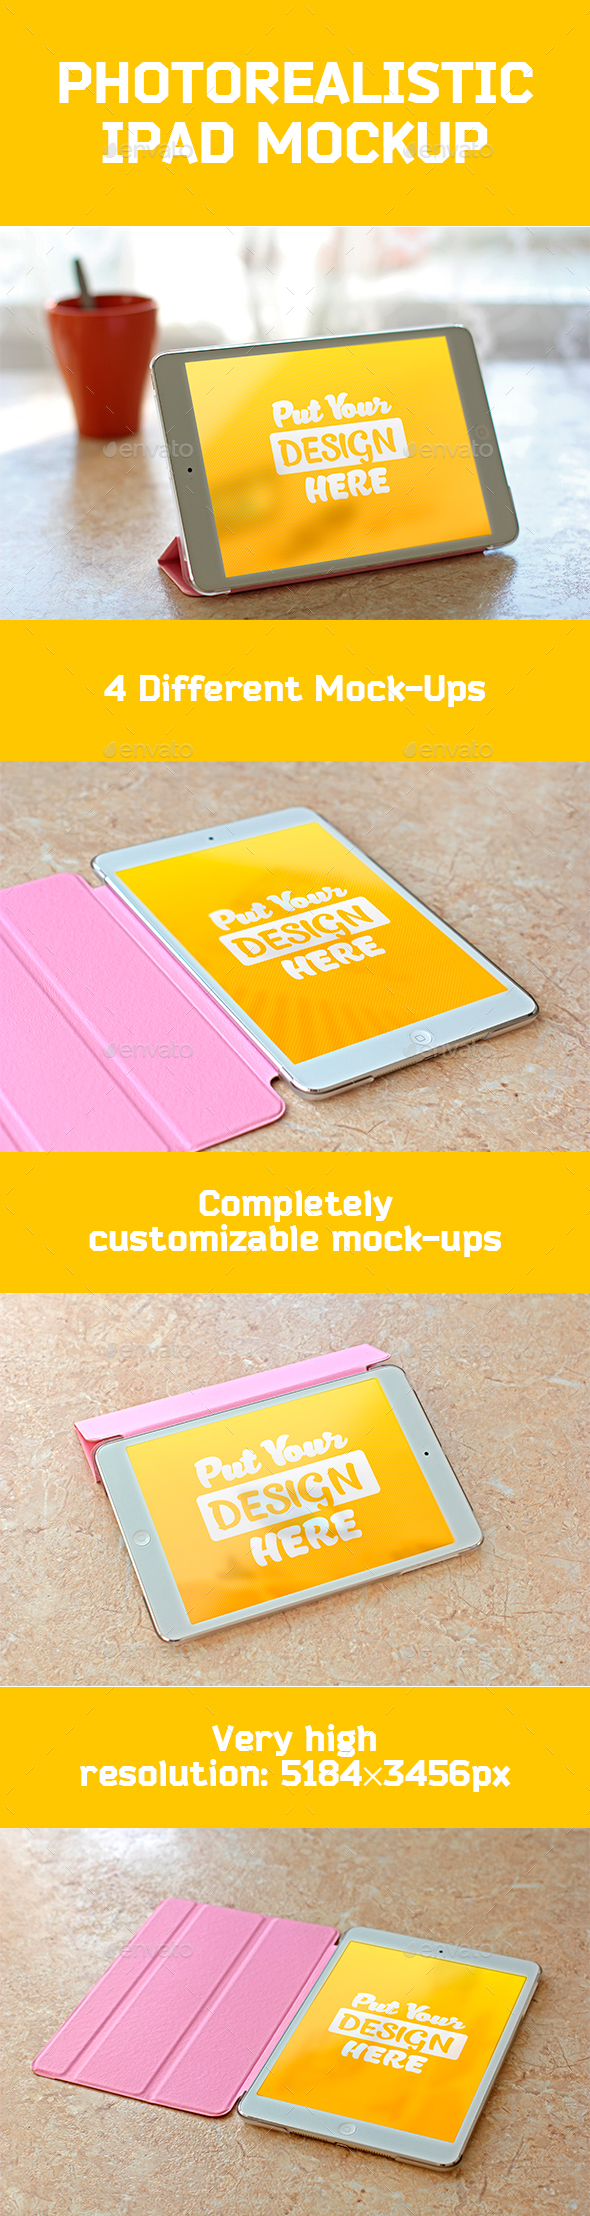 Photorealistic iPad Mockup Templates - Mobile Displays